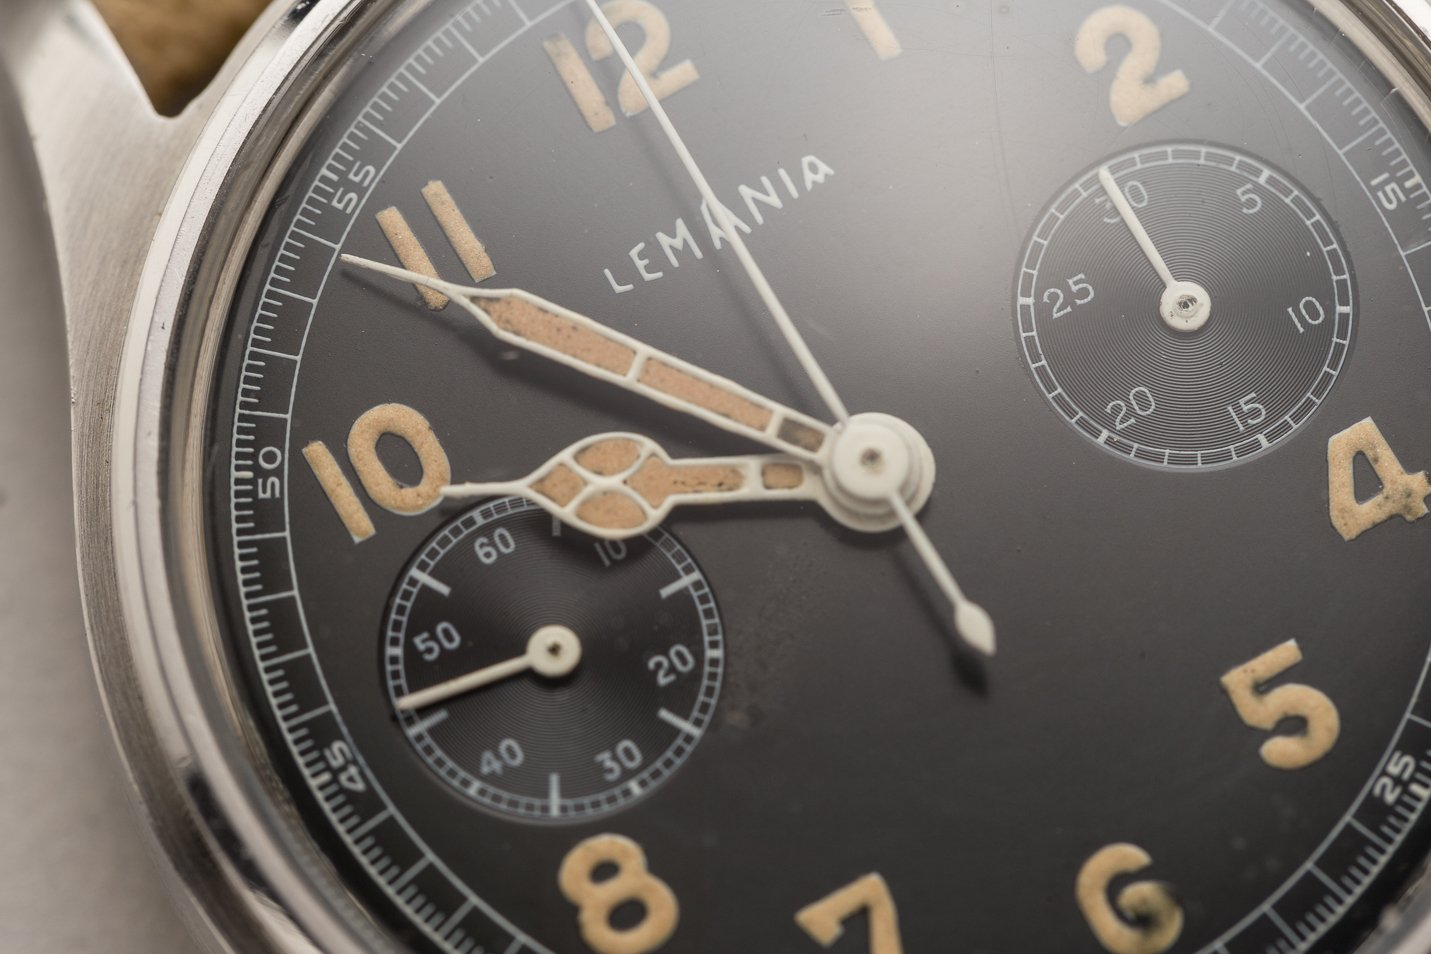 Beautifully aged radium – similar color on the dial and hands